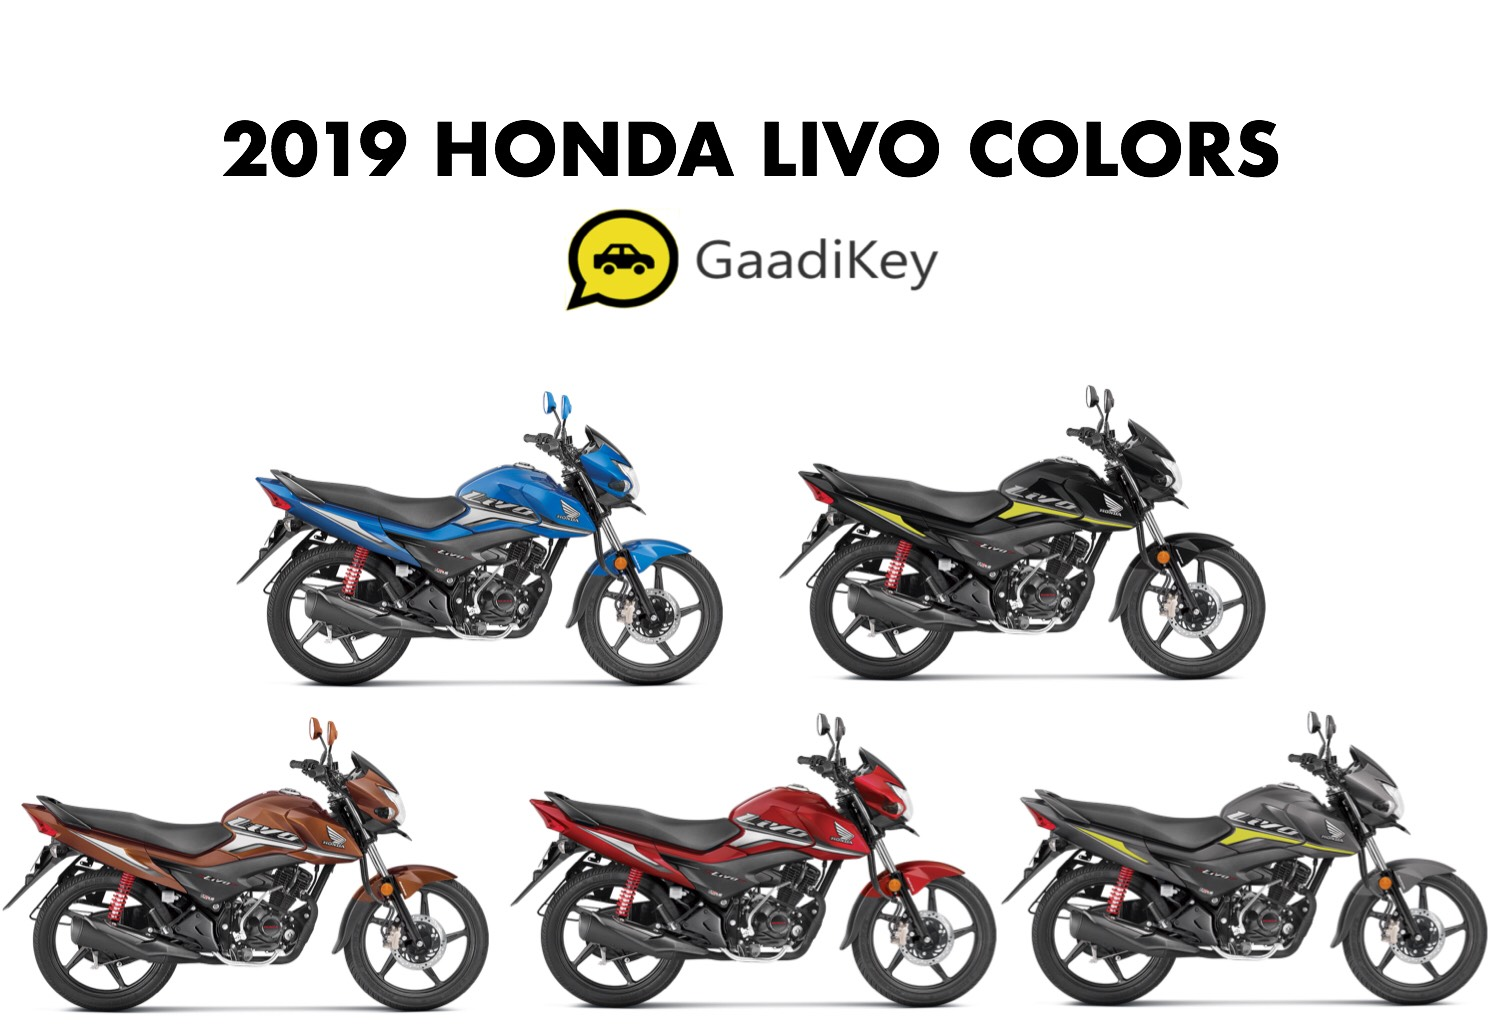 2019 Honda Livo Colors - New 2019 Model Honda Livo Colours